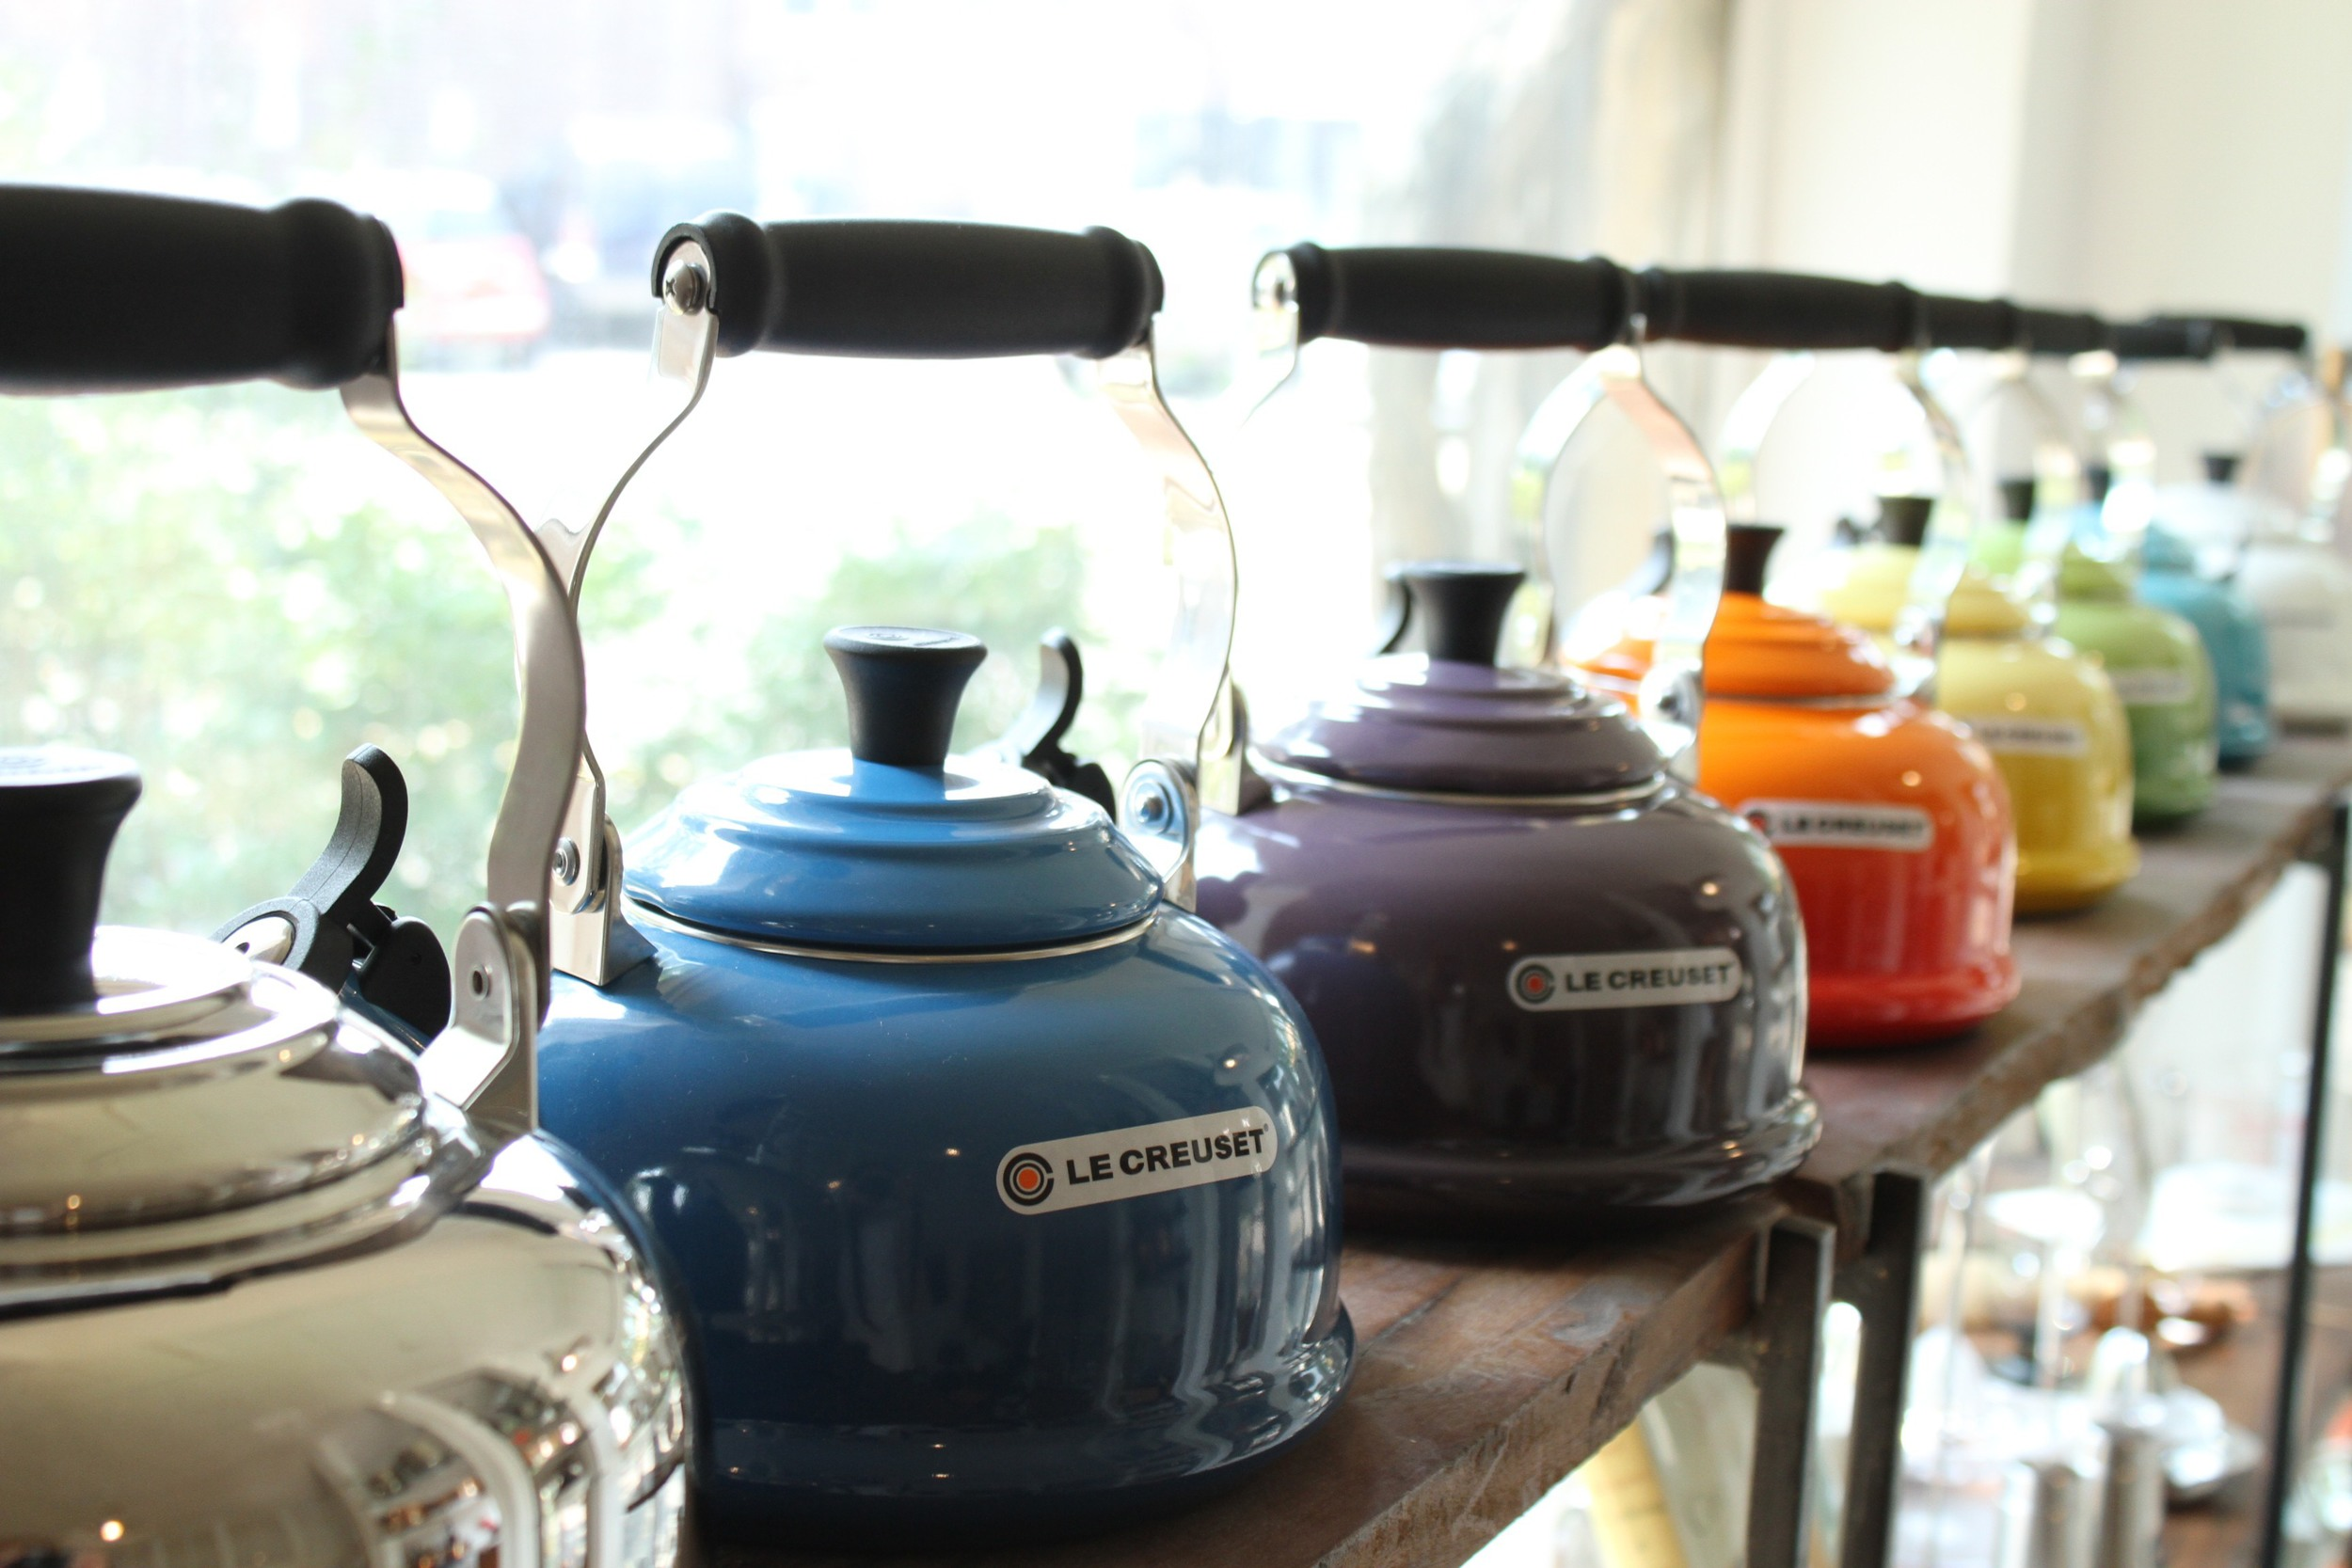 Le Creuset 1.8 qt whistling tea kettles , pictured from front to back in stainless steel, Marseille, Cassis, Flame, Soleil, Palm, Carribean, and White. Also available in Cherry.